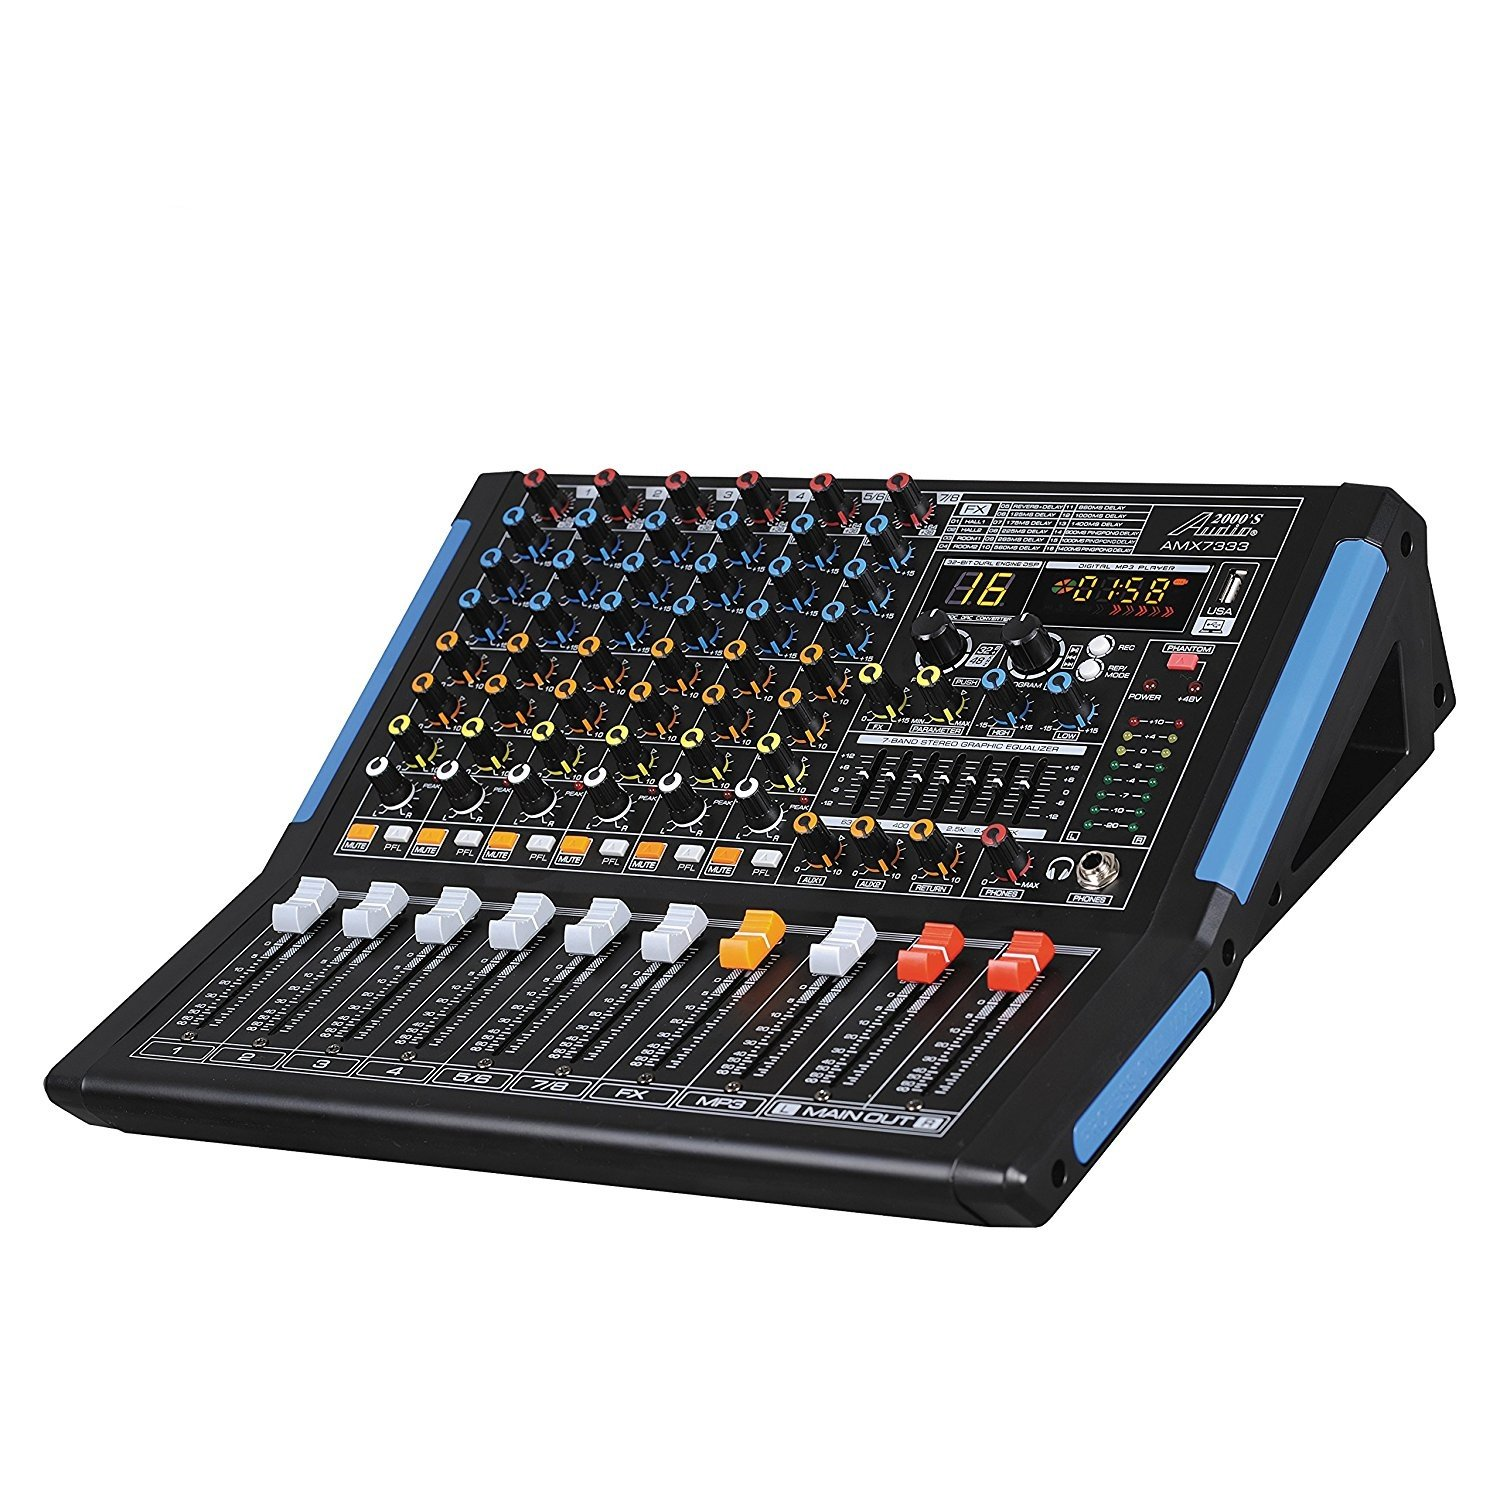 Audio 2000s AMX7333UBT 8-Channel Audio Mixer Sound Board with USB Interface and Bluetooth